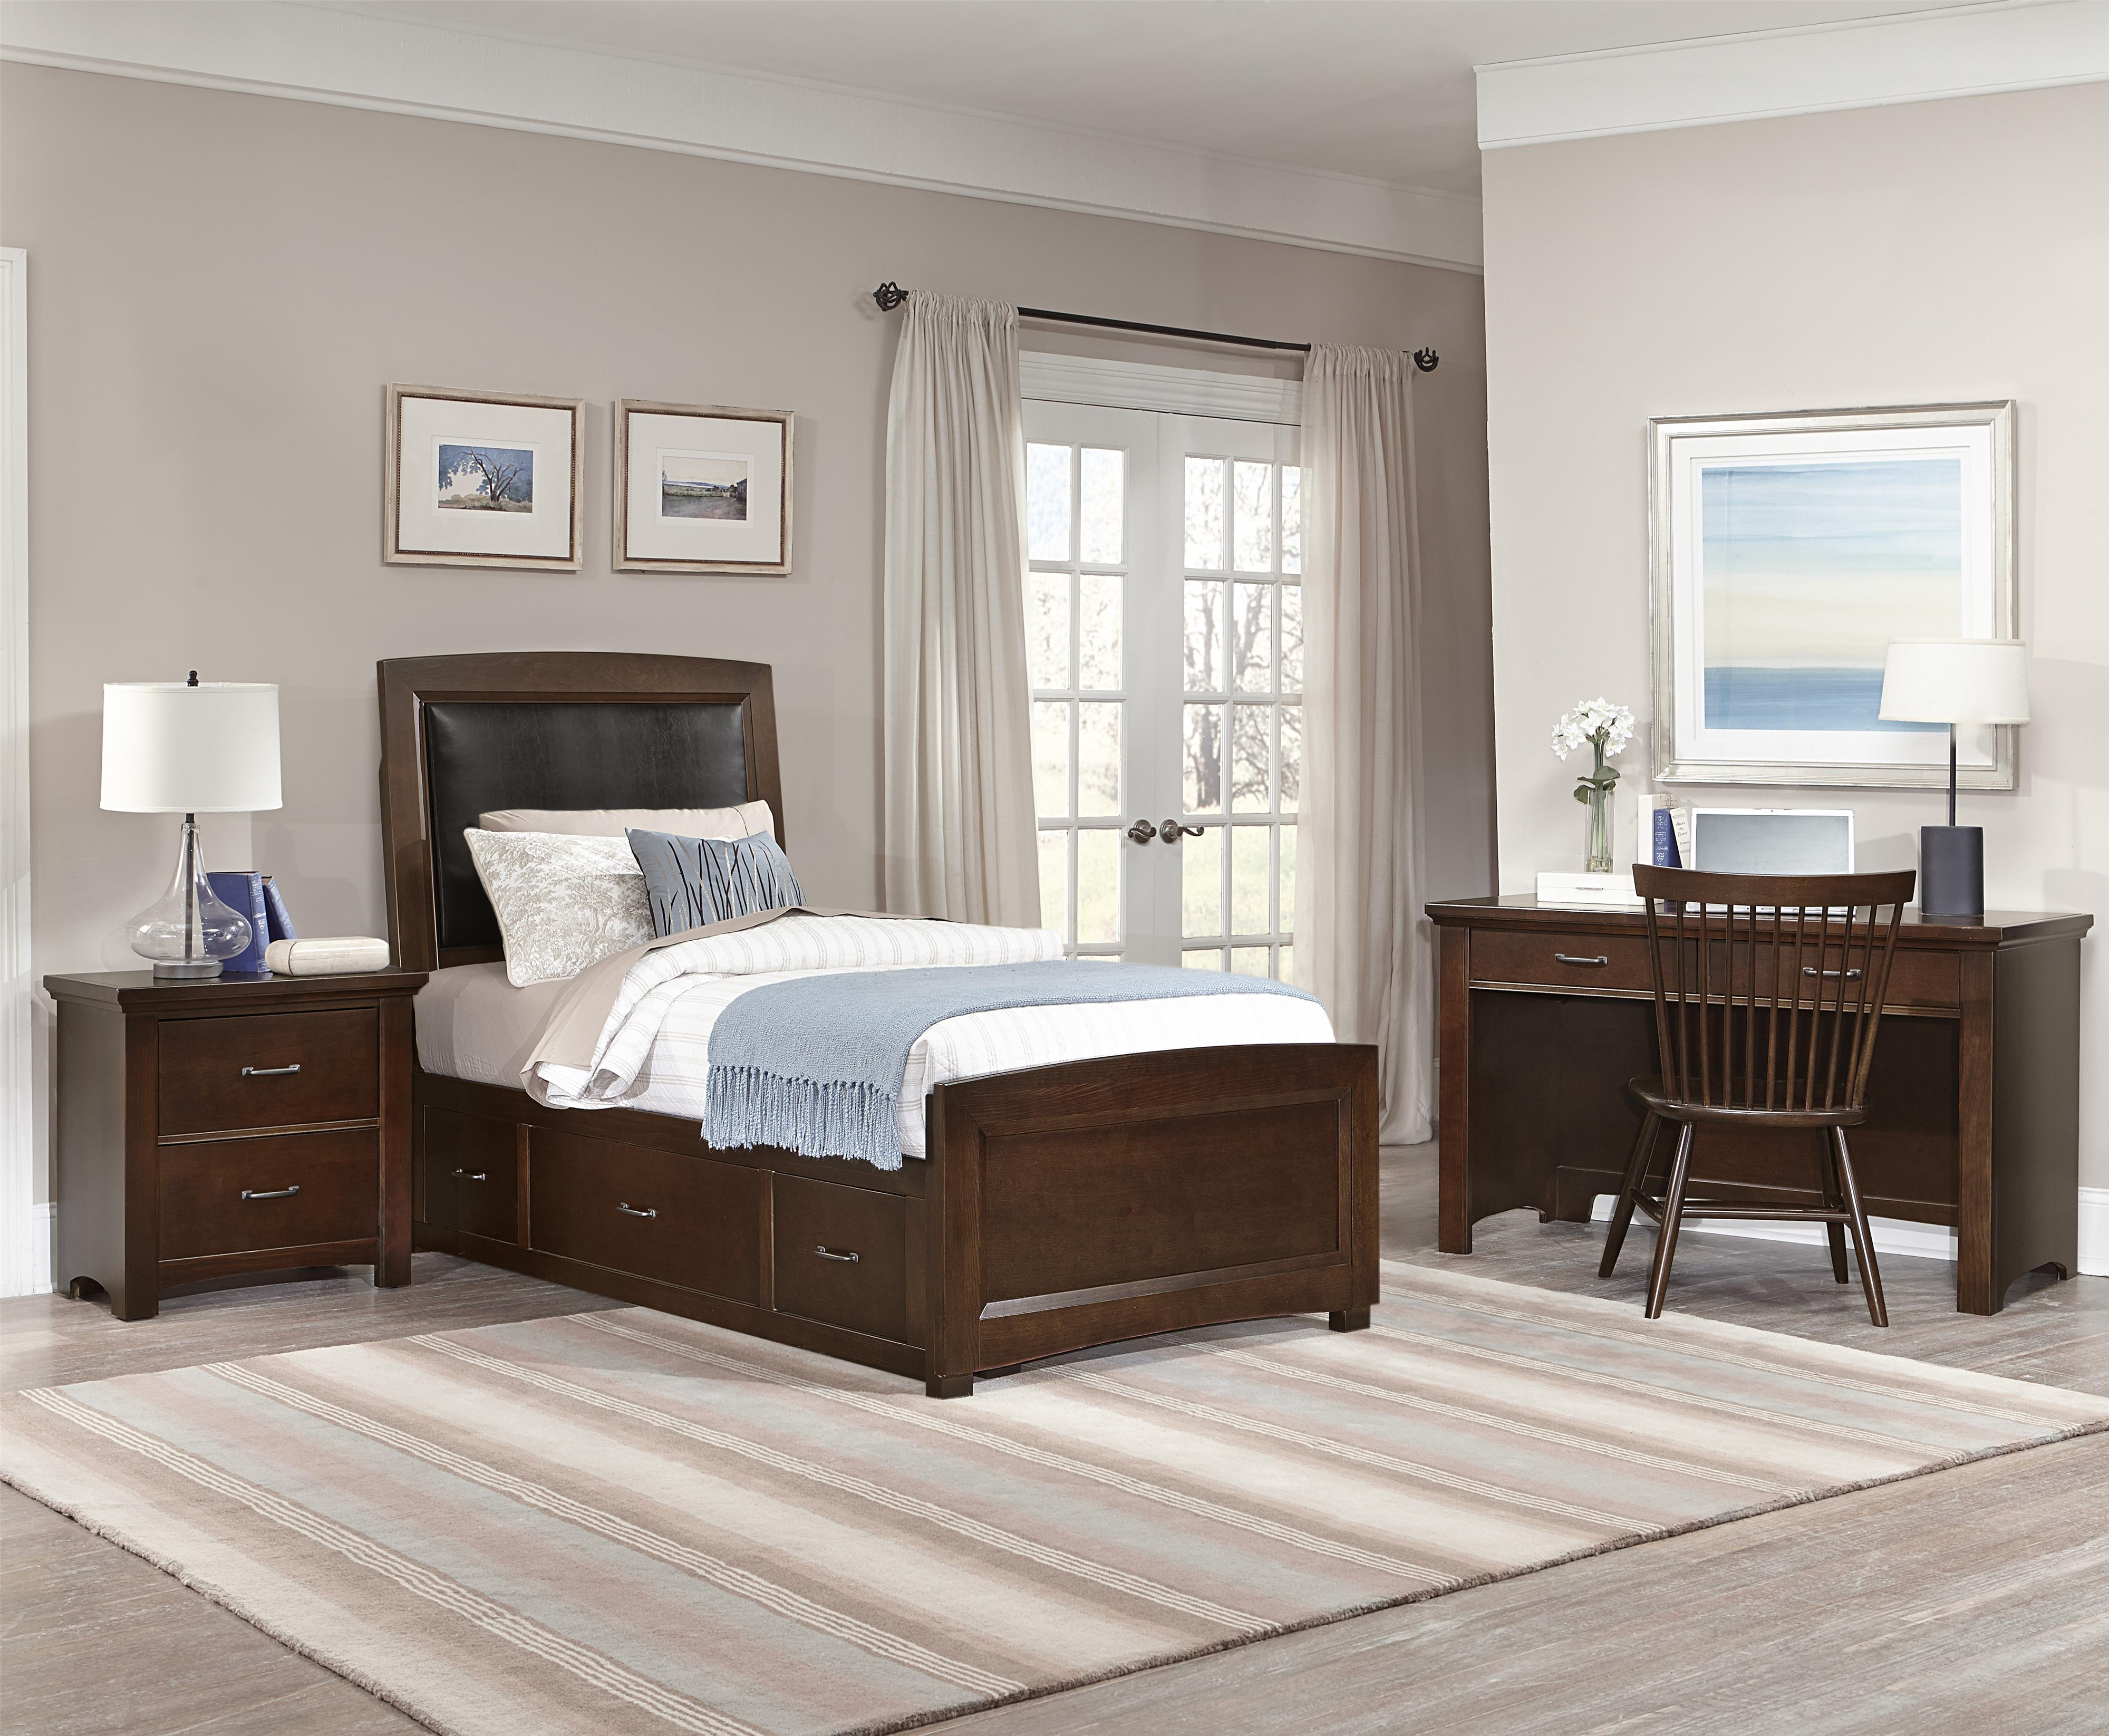 Vaughan Bassett Transitions Twin Bedroom Group Dunk Bright Furniture Bedroom Groups